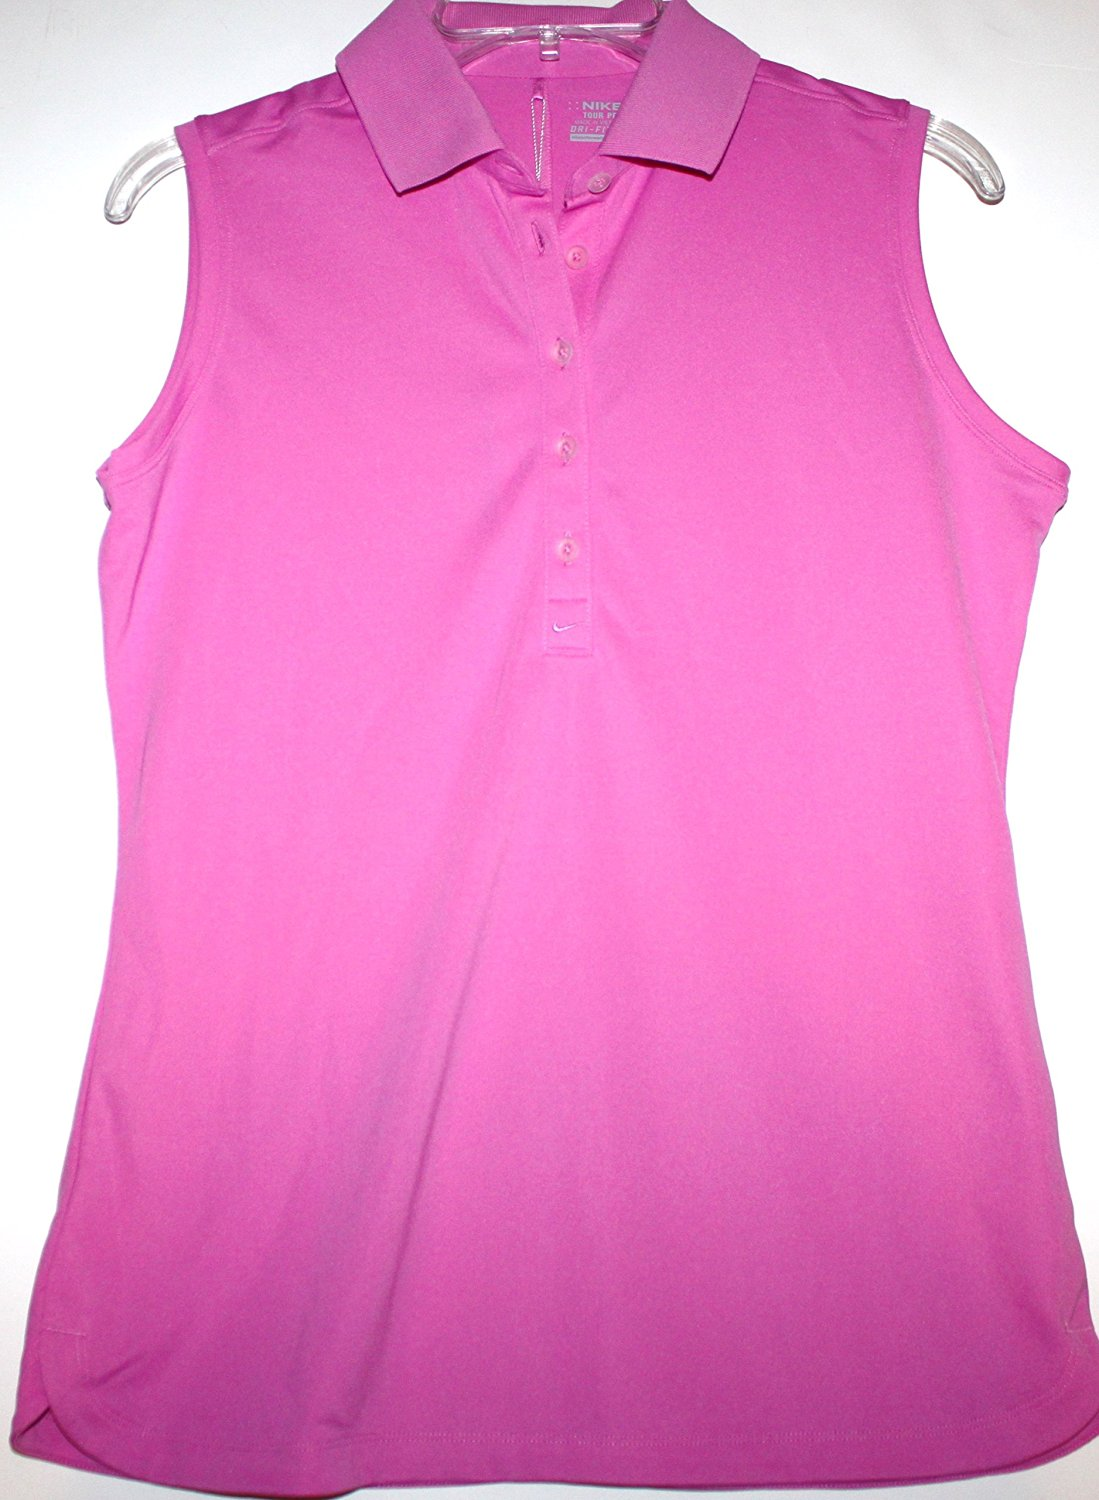 fd1eca47 Get Quotations · Nike Golf Women's M 100% Polyester Pink Victory Sleeveless Polo  Shirt